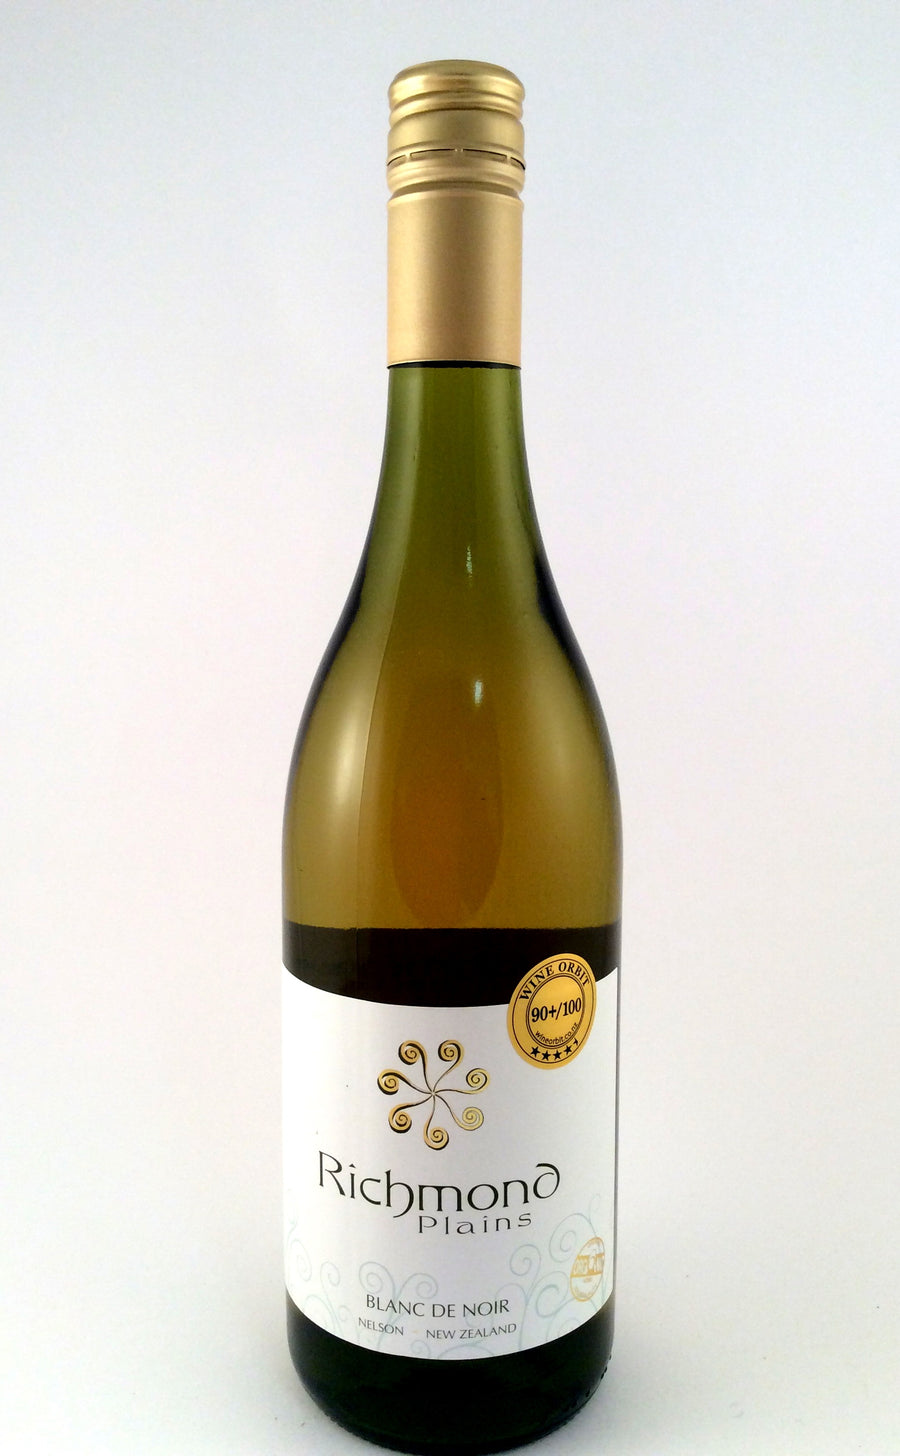 Richmond Plains Blanc de Noir-Wine-Wineseeker